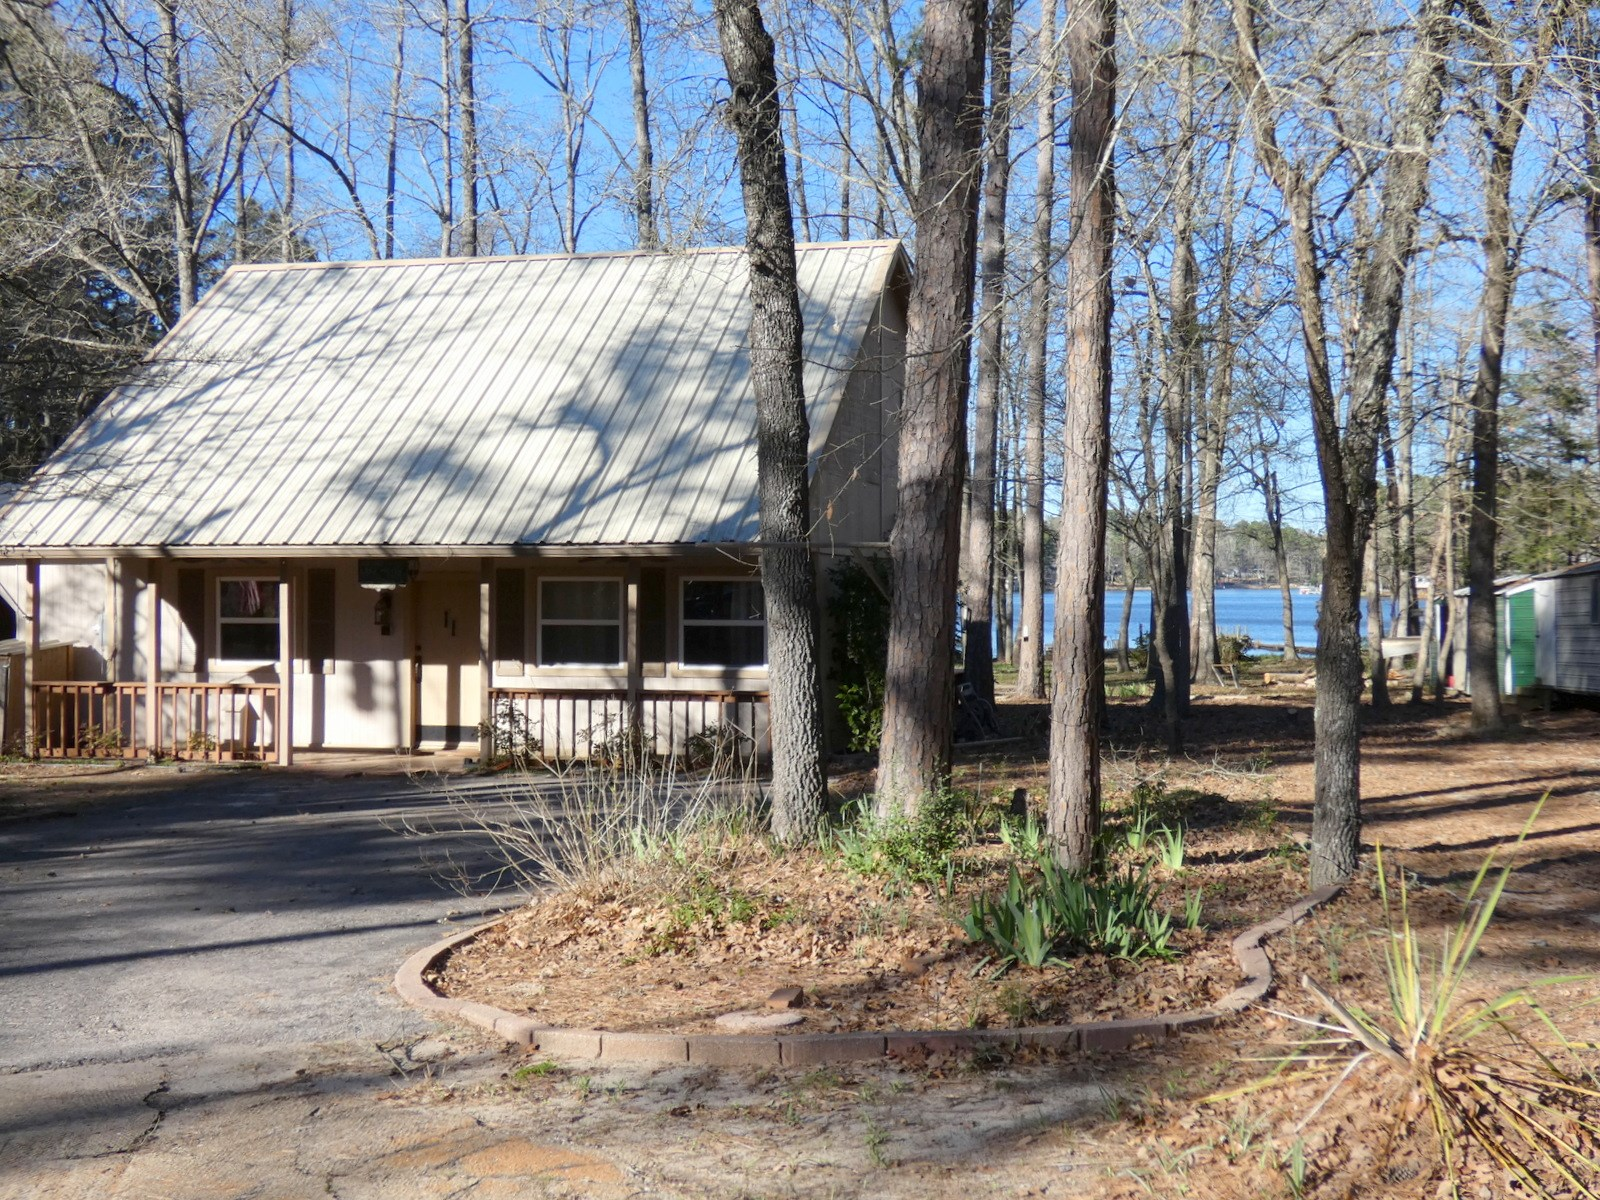 LAKEFRONT HOME AFFORDABLE EAST TEXAS WOOD COUNTY HAWKINS